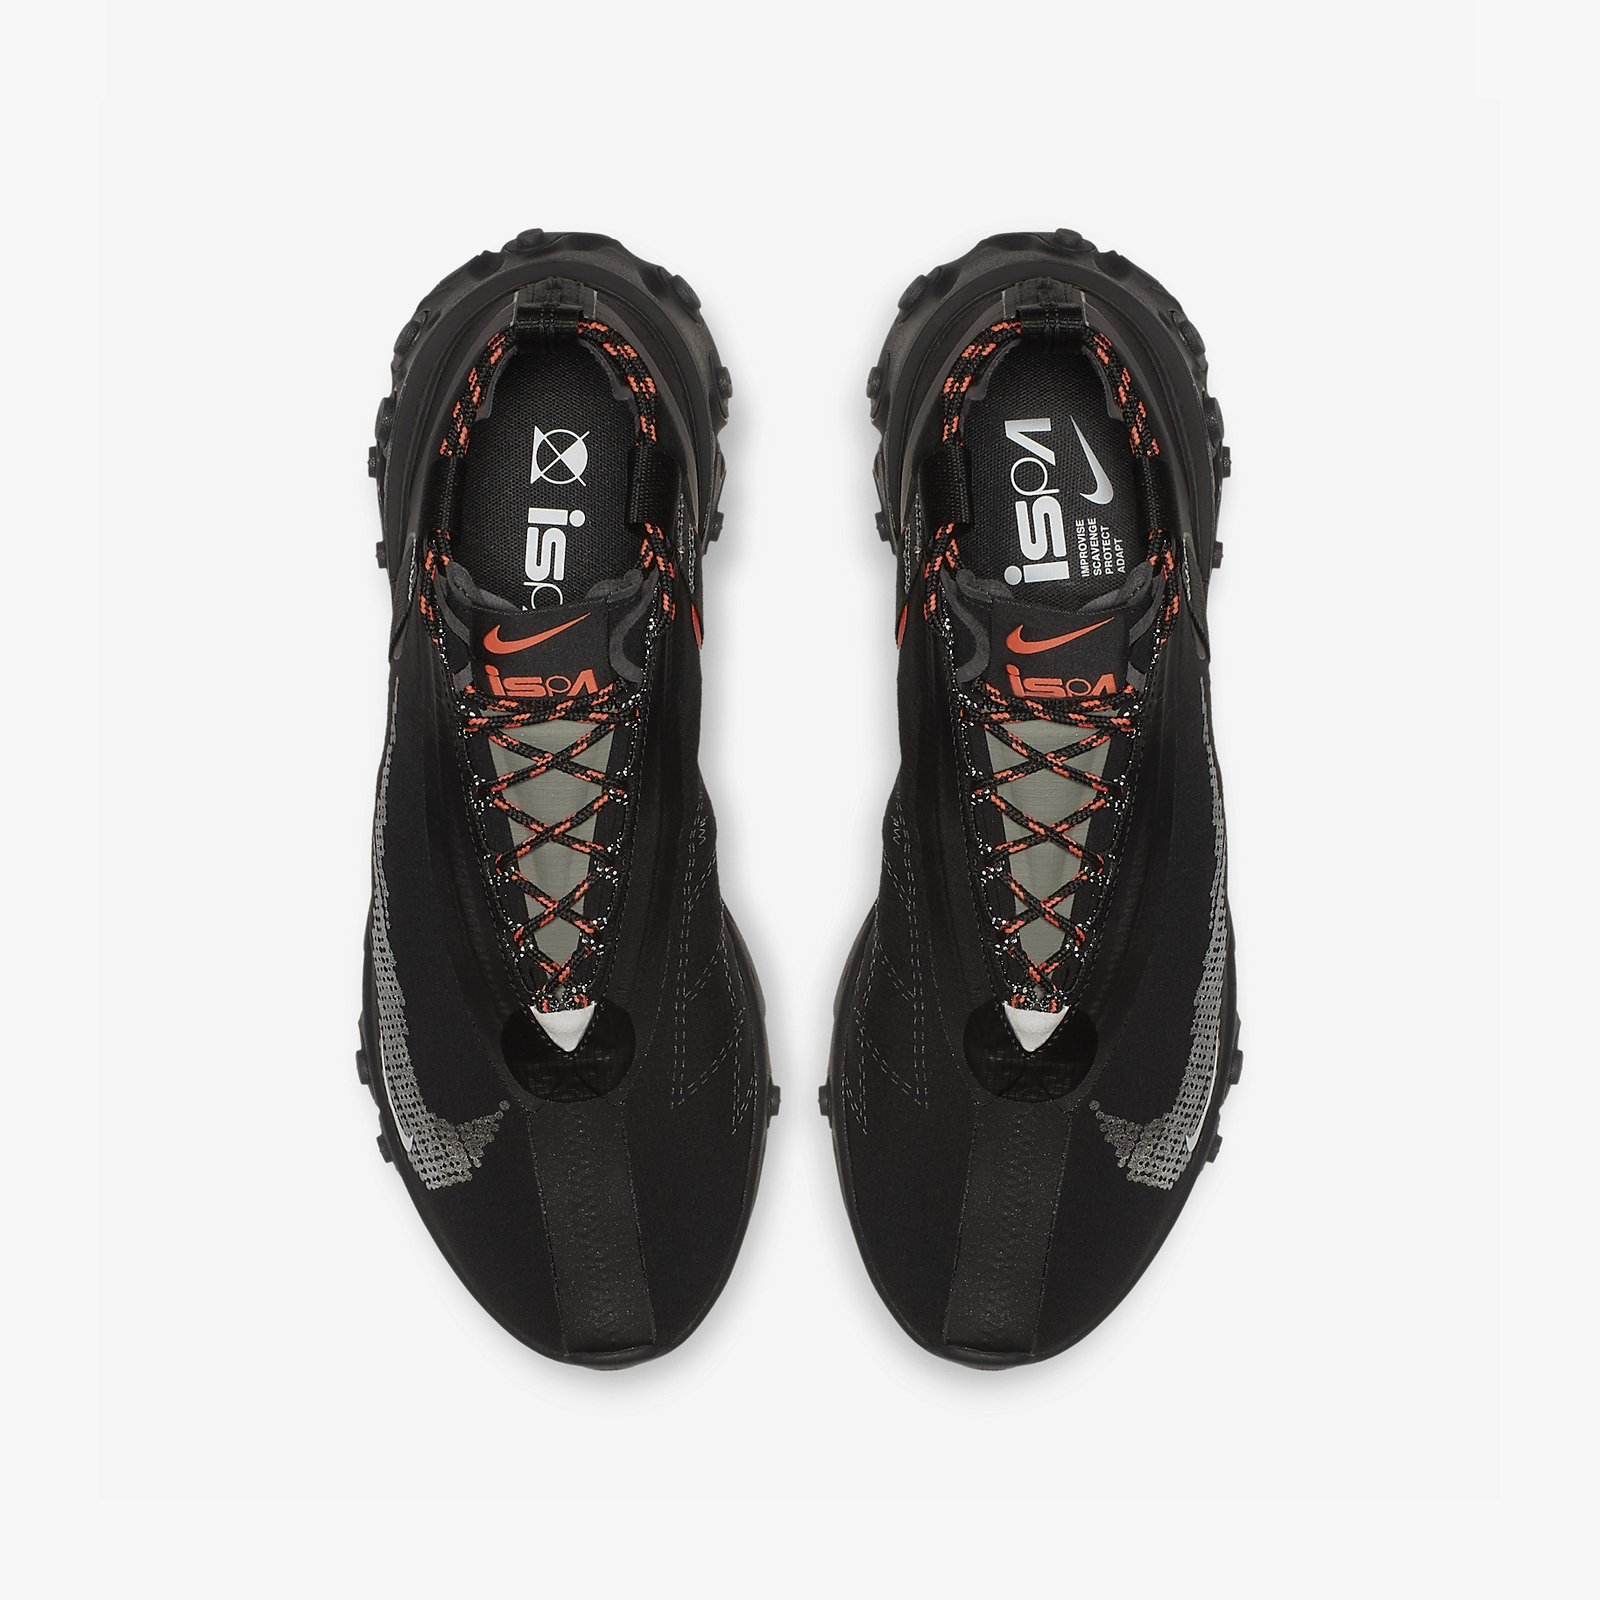 Nike React Runner Mid WR ISPA - At3143-001 - SNS | sneakers ...